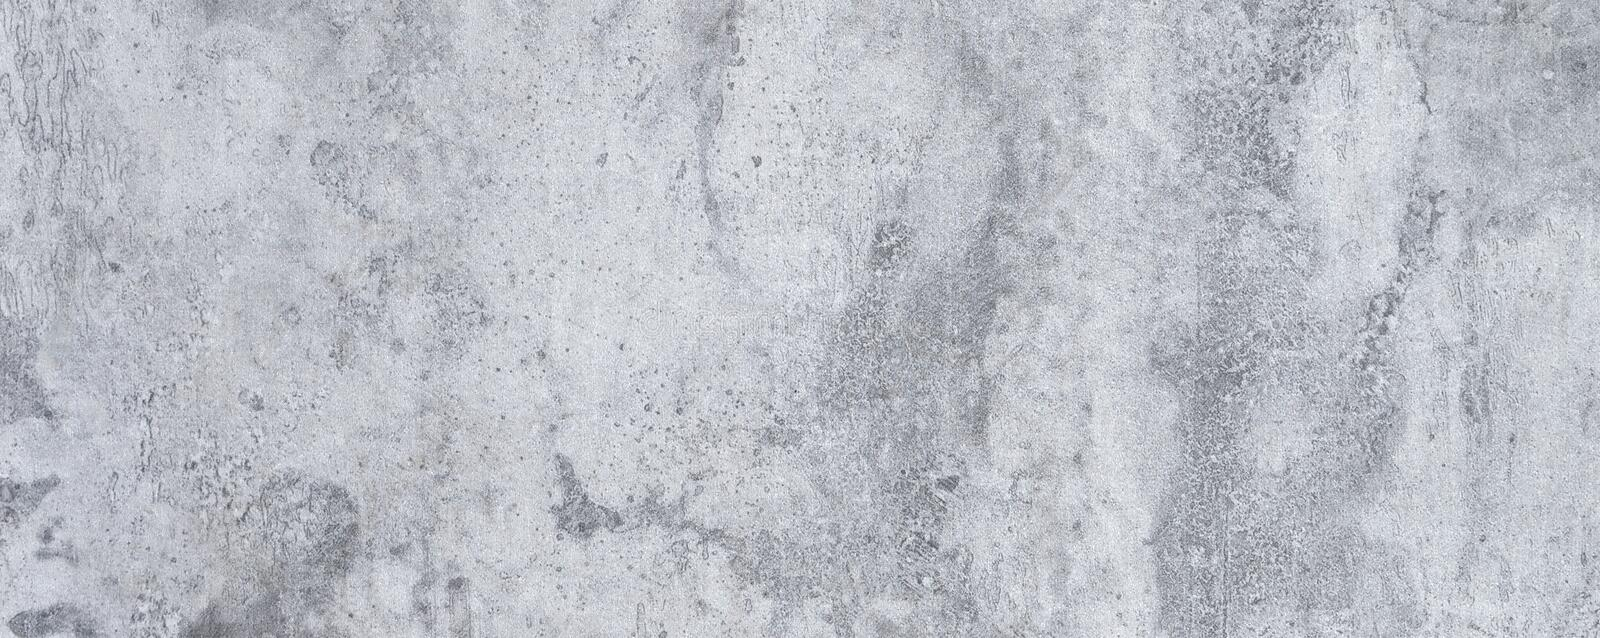 Marble texture abstract background royalty free stock photography